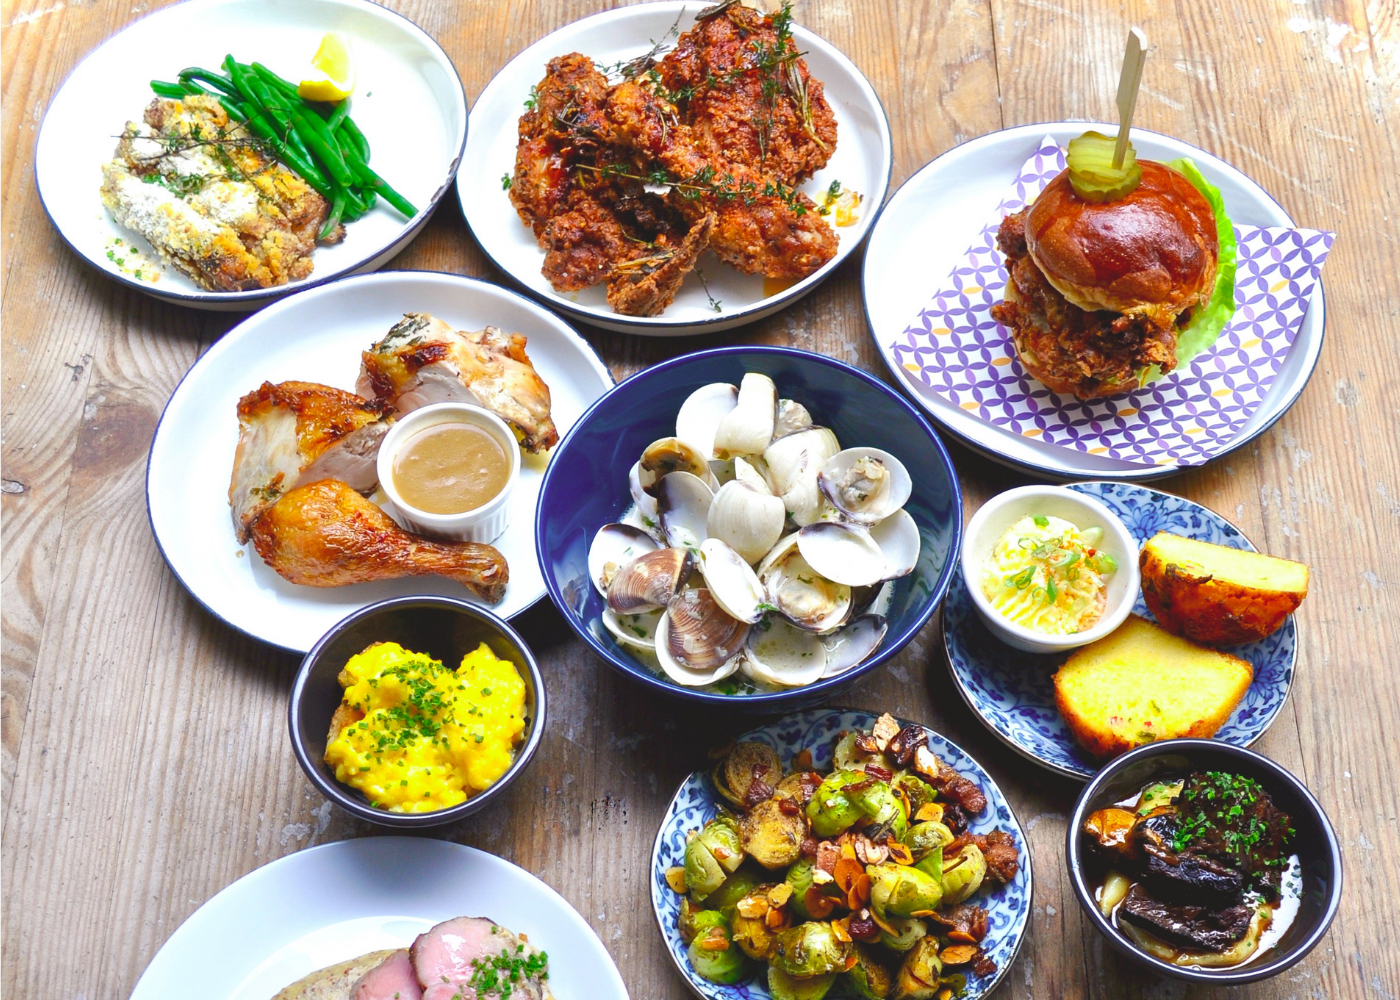 Summer Hill | Easter brunch and buffets in Singapore